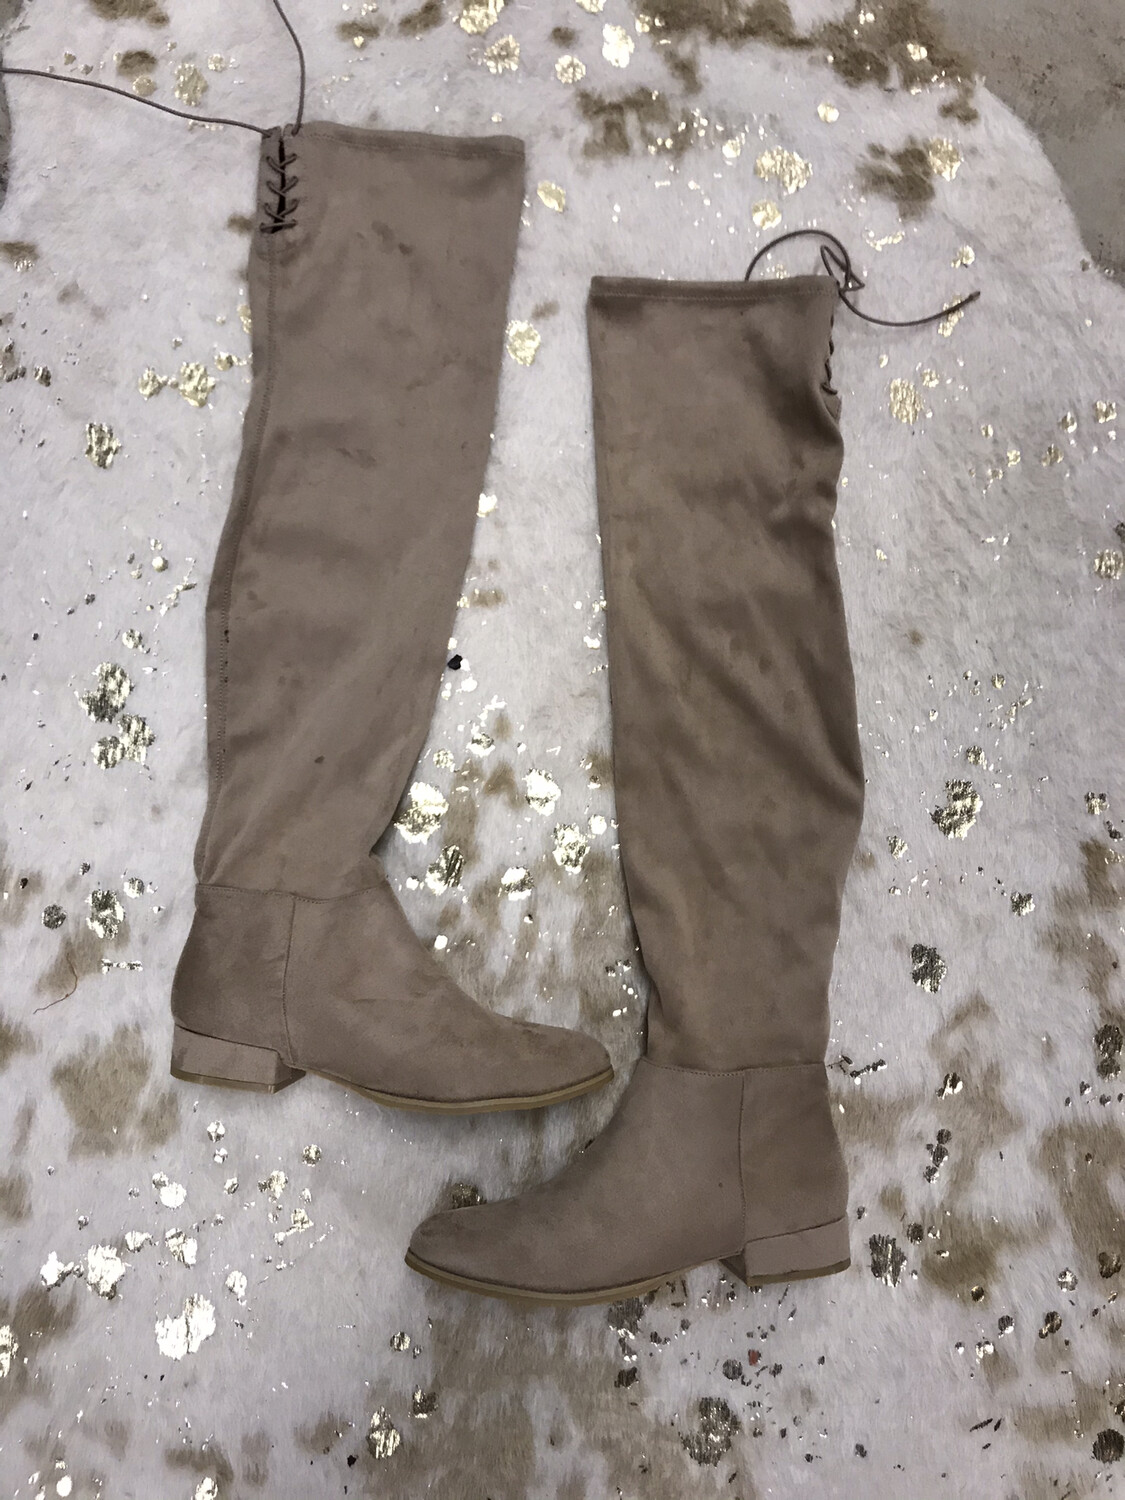 Chinese Laundry Tan Felt High Boot - Size 10